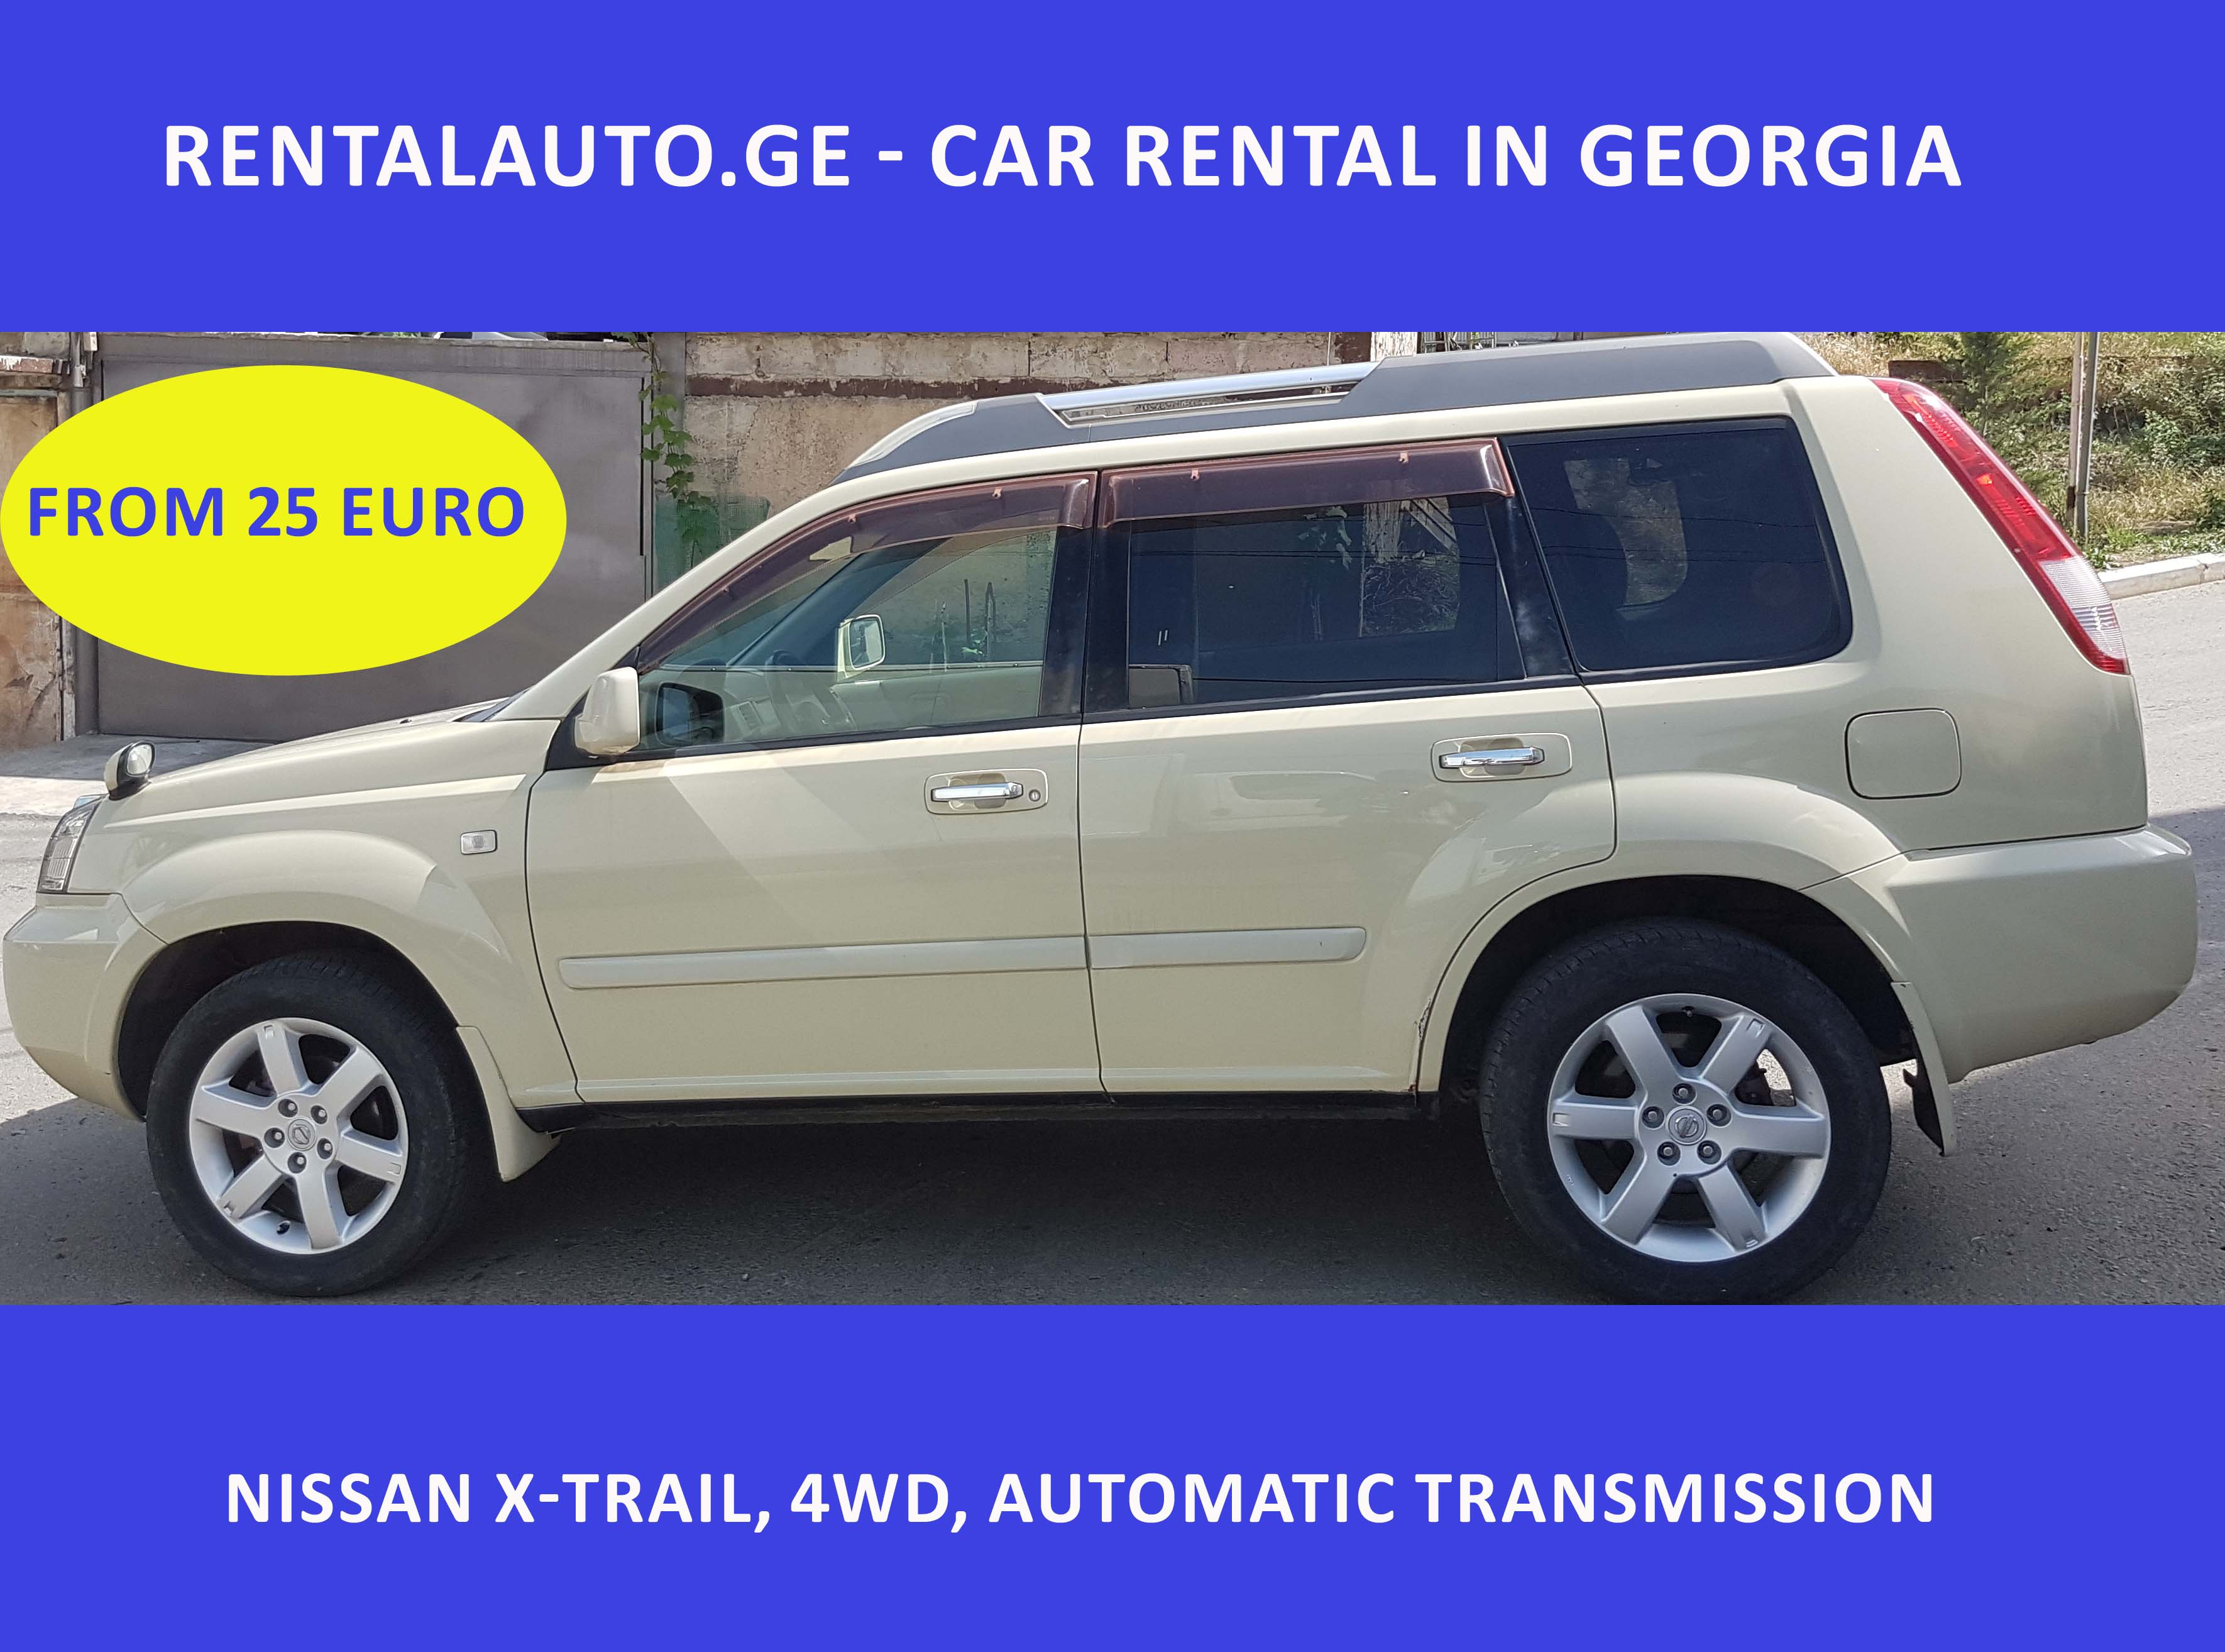 discounted car rental jeep long eleuthera rates a available cadet term in rent